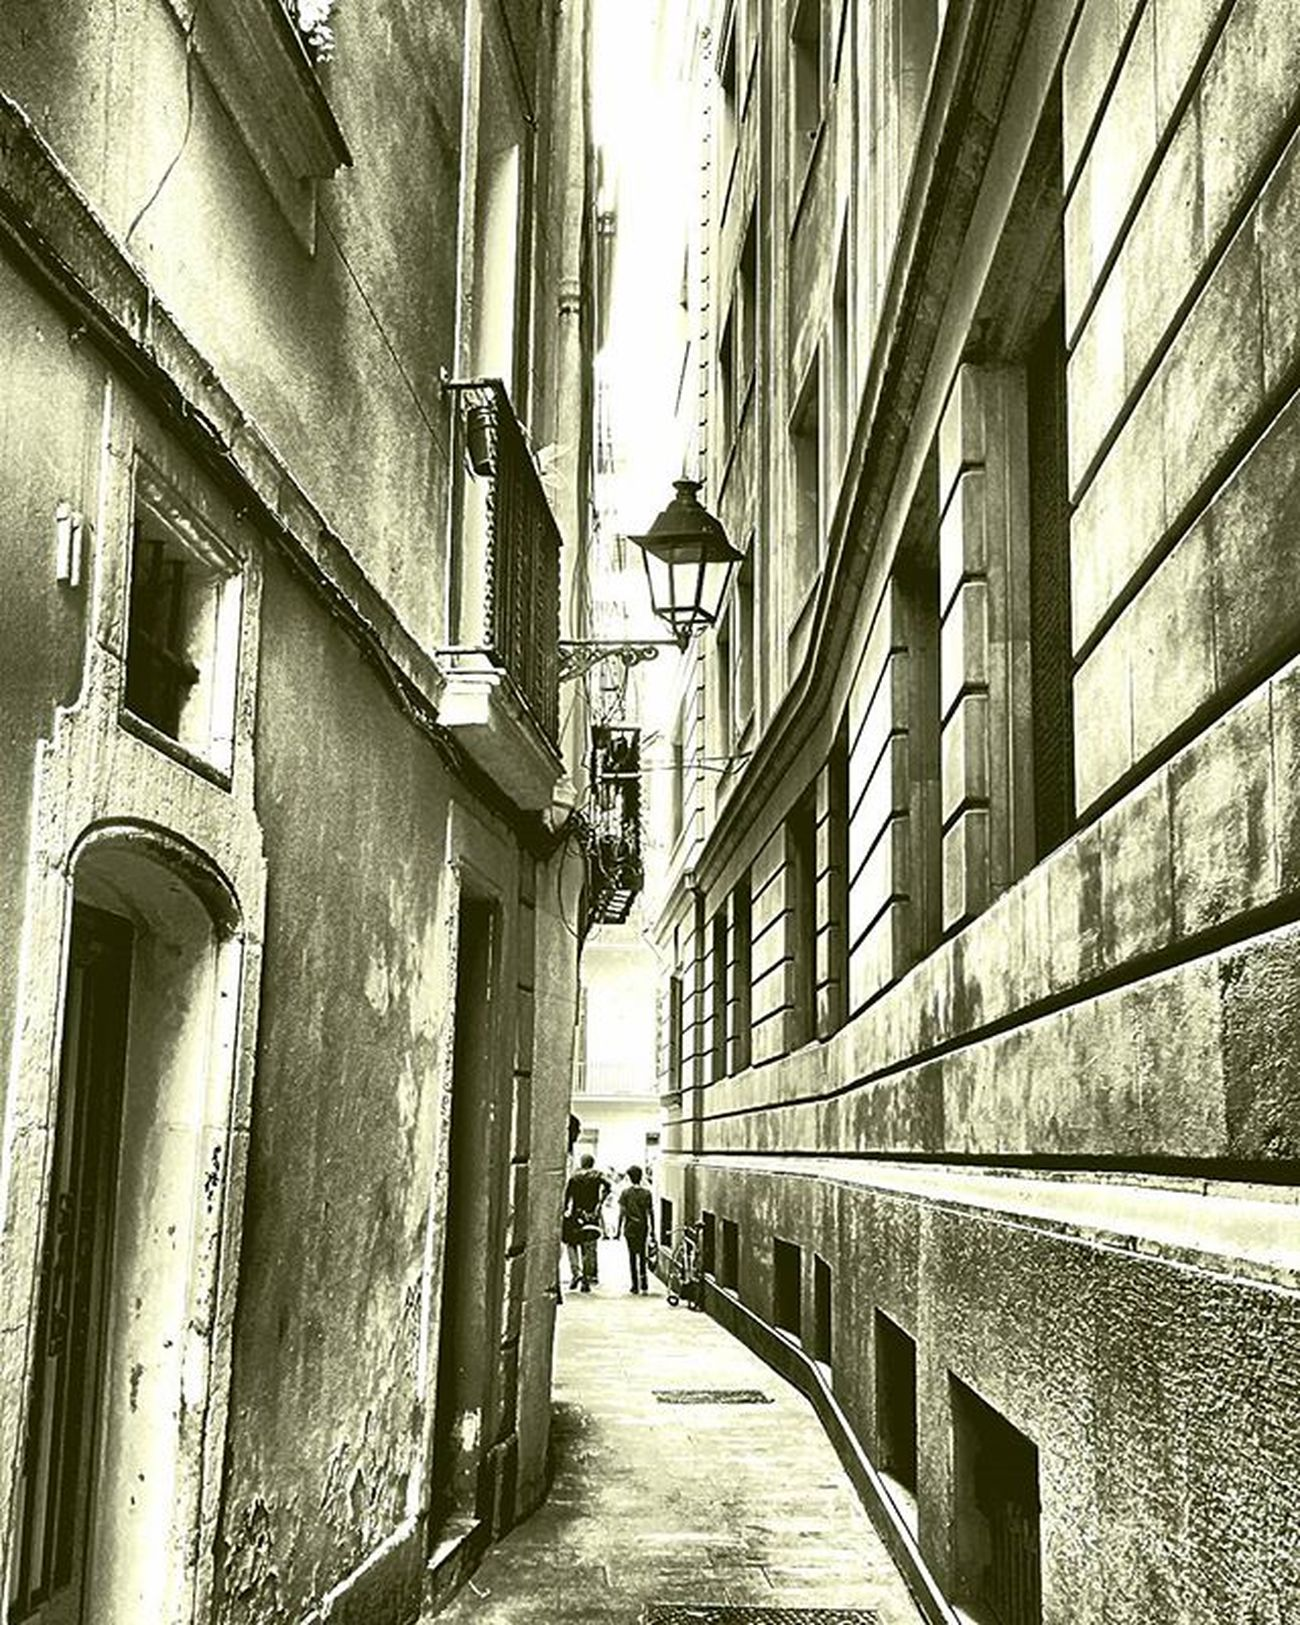 Barrigotic Barcelona Igersbarcelona Igerscatalonia Igerscatalunya Street Calle Katu Rue HDR Hdr_lovers Hdr_pics Hdr_captures Hdr_spain Tv_hdr Bcndreamers Bcnexploradores Thebarcelonist Fotofanatics_streetlife_ Streets_of_theworld